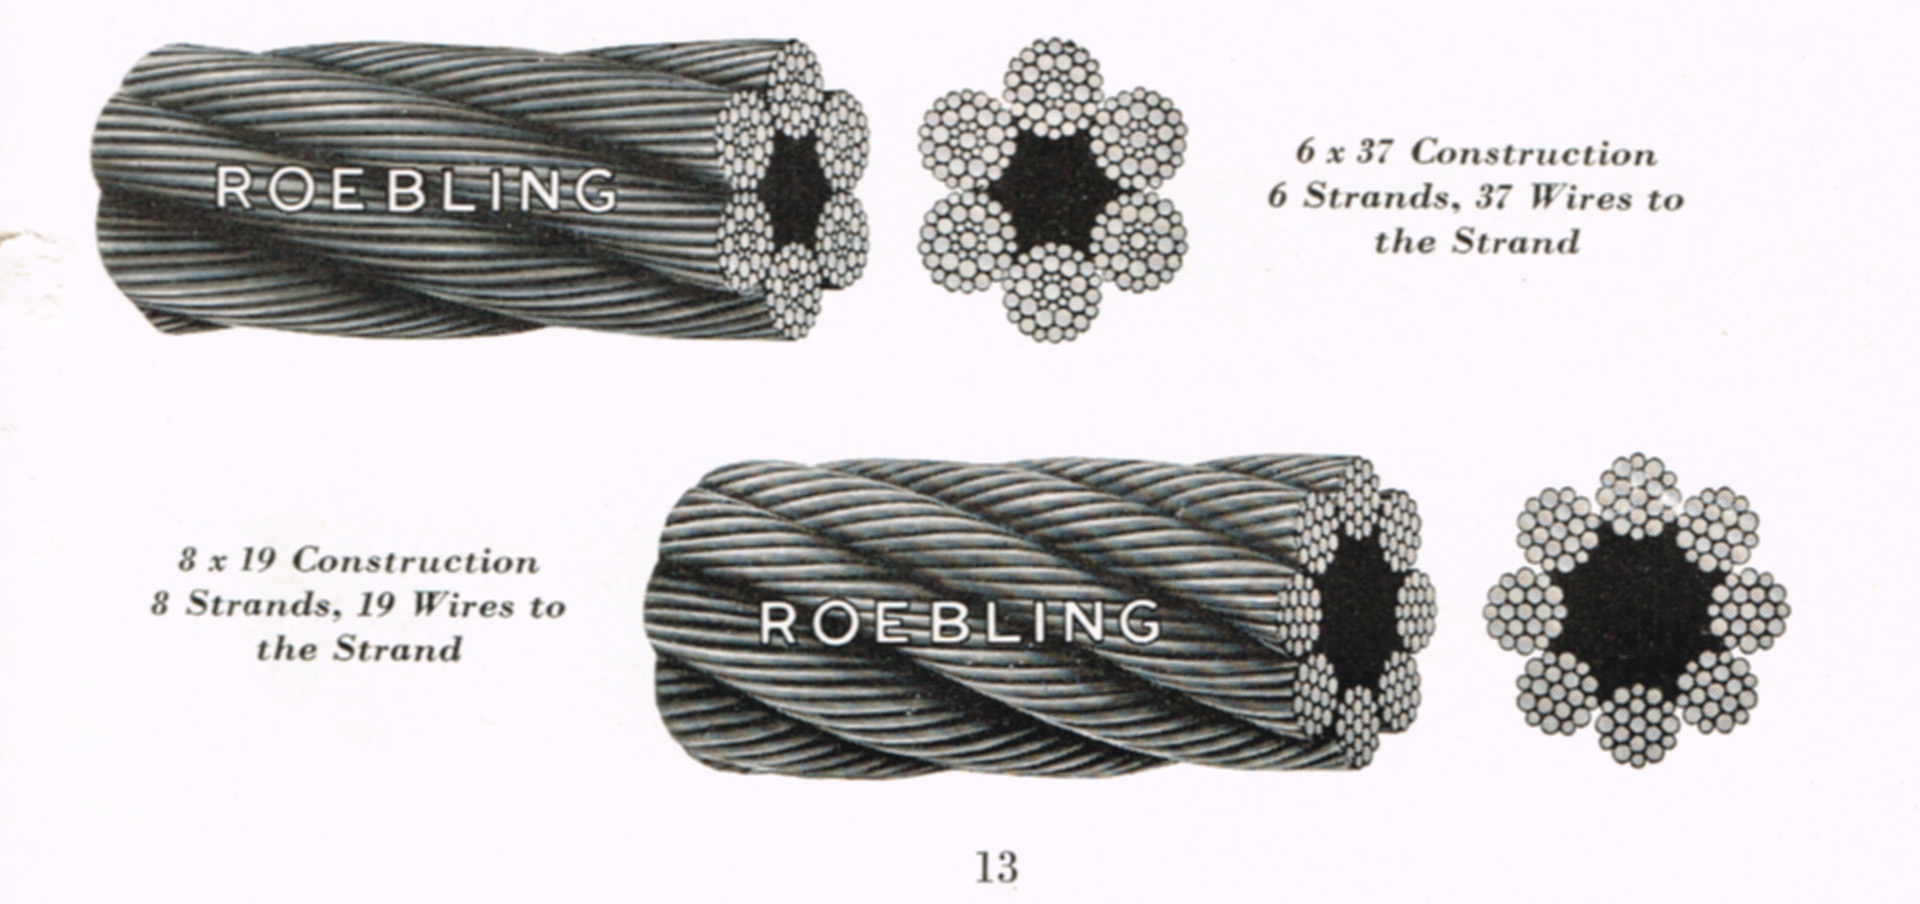 Iron Rope. Source: Wire Engineering: A Distinctive Roebling Service. 3rd reprint. Trenton, NJ: John A. Roebling's Sons Co., 1941, p. 13.